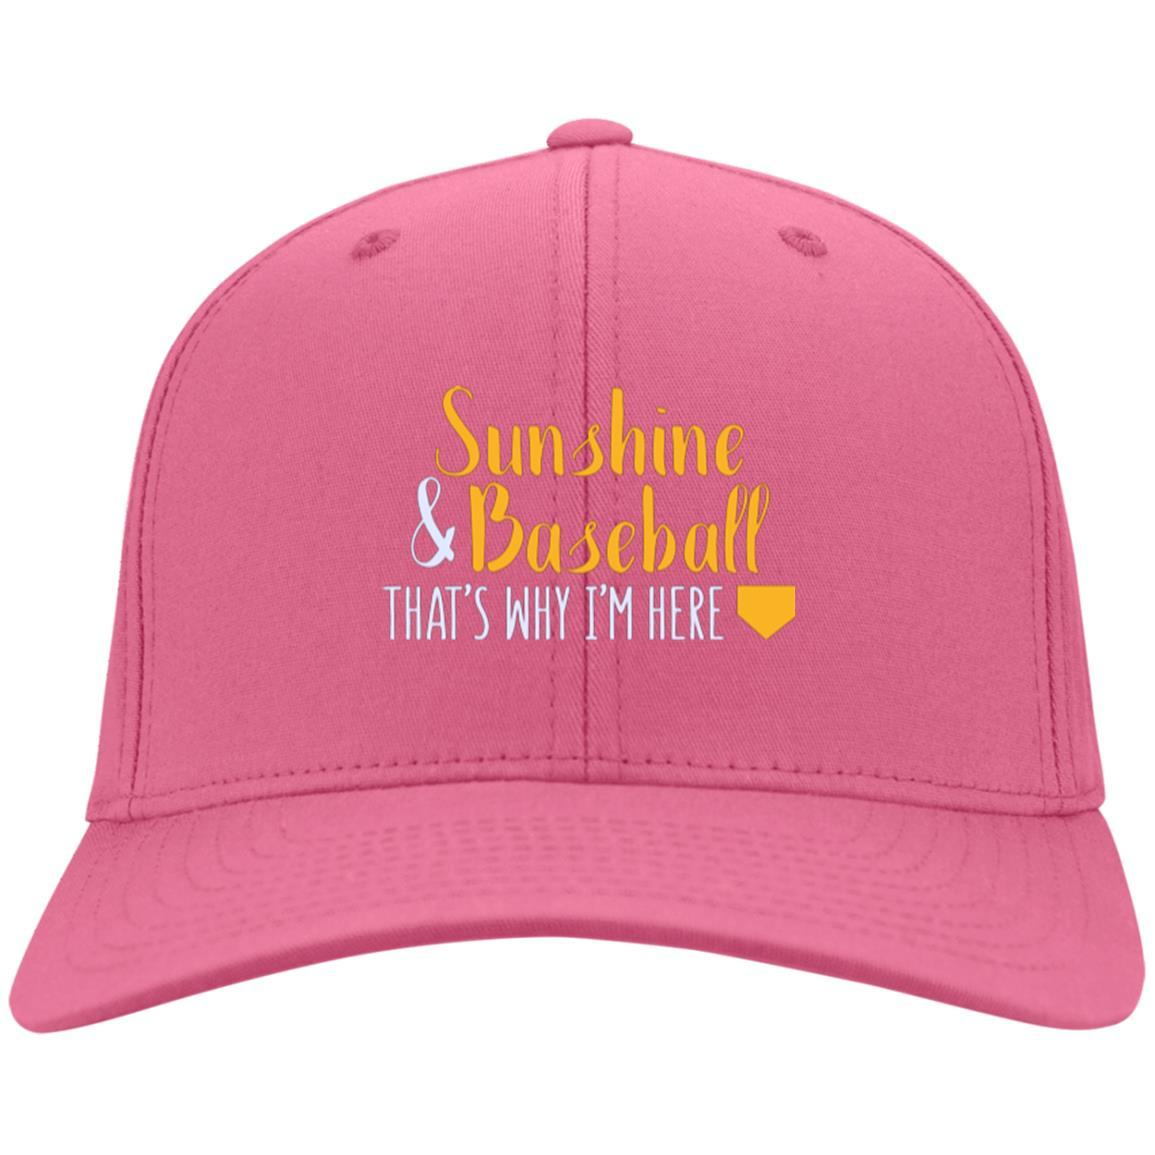 Sunshine & Baseball That's Why I'm Here Cotton Twill Hat